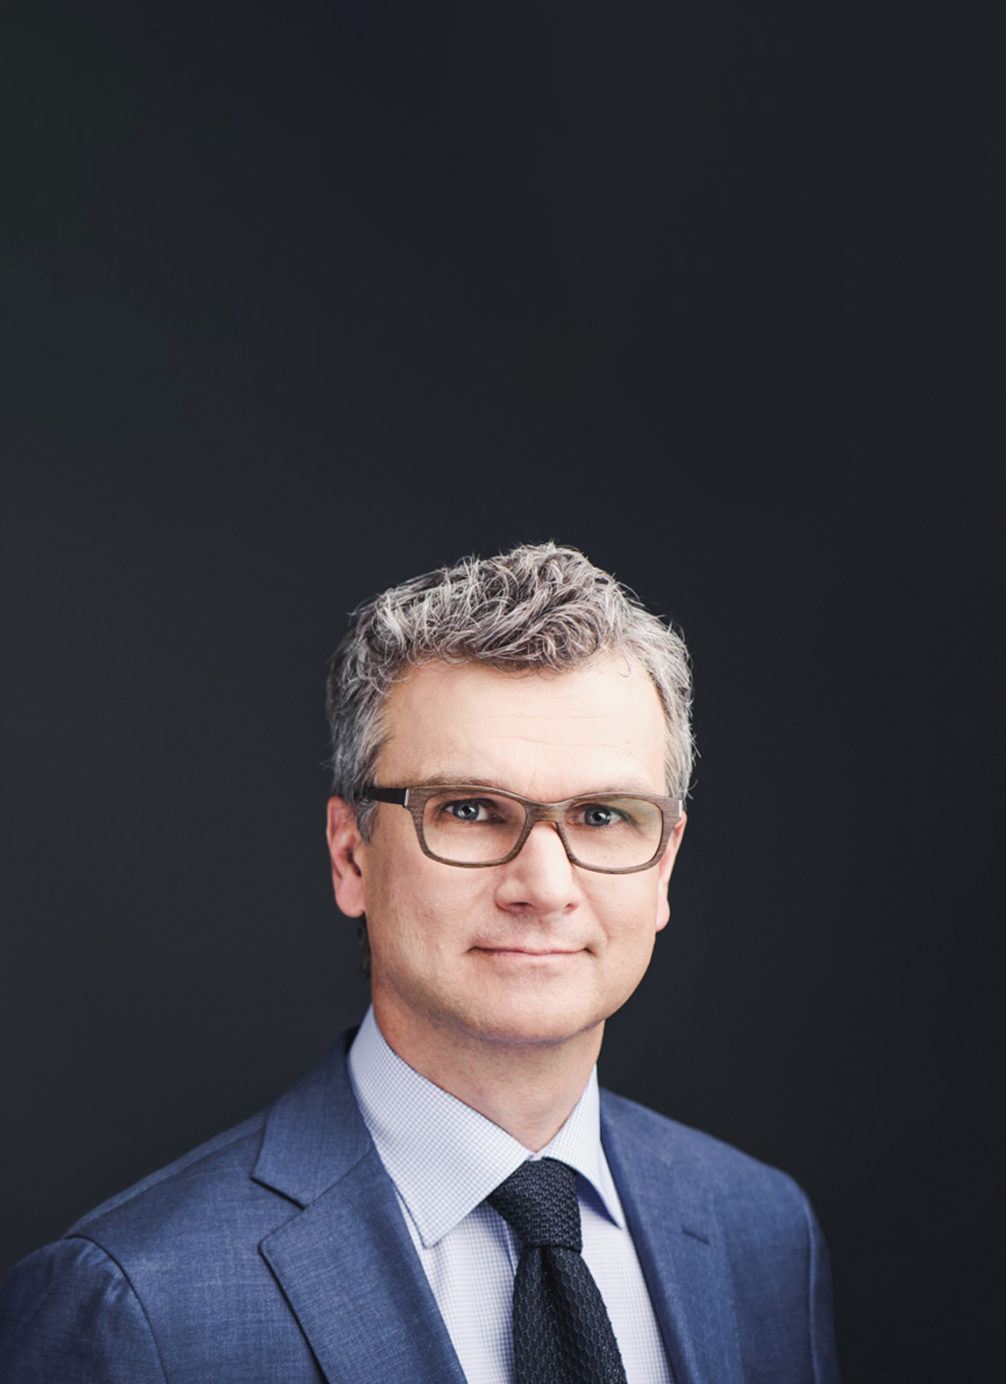 Prof. Audrius Sveikata, MD, PhD, CEO, Member of the Board, Co- founder